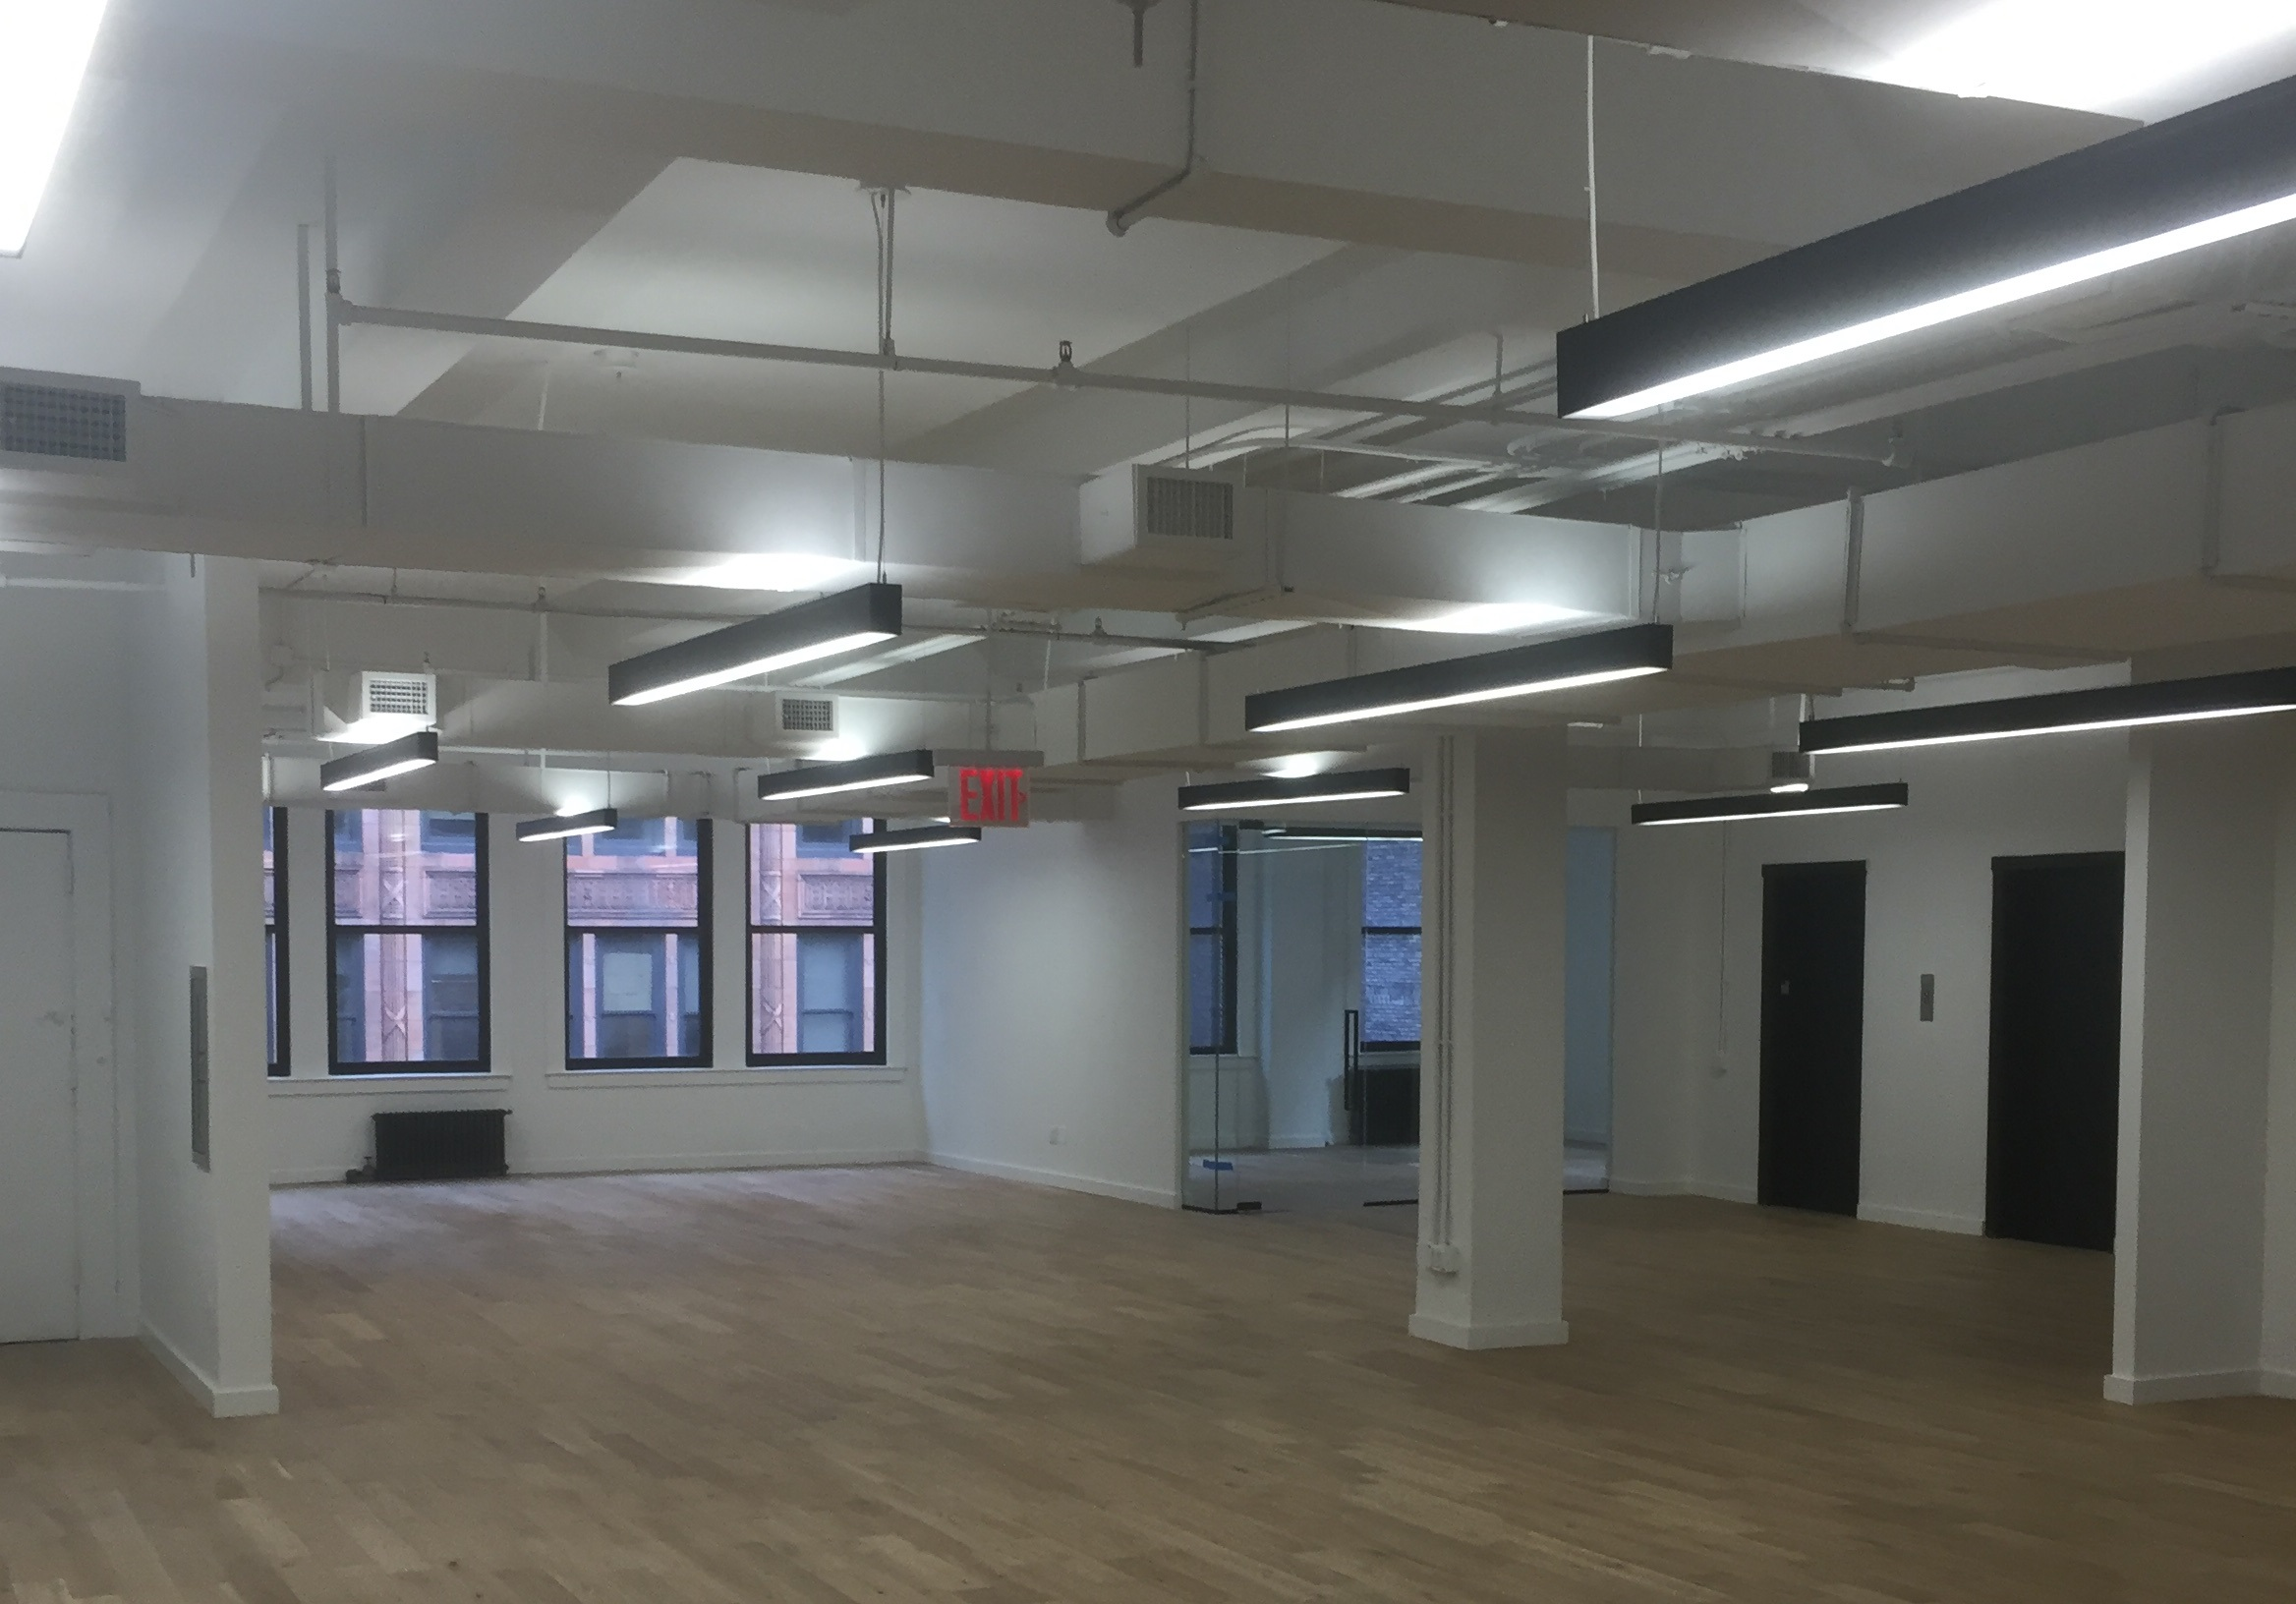 22 West 38th St / NYC - Carpentry services provided for office fitout